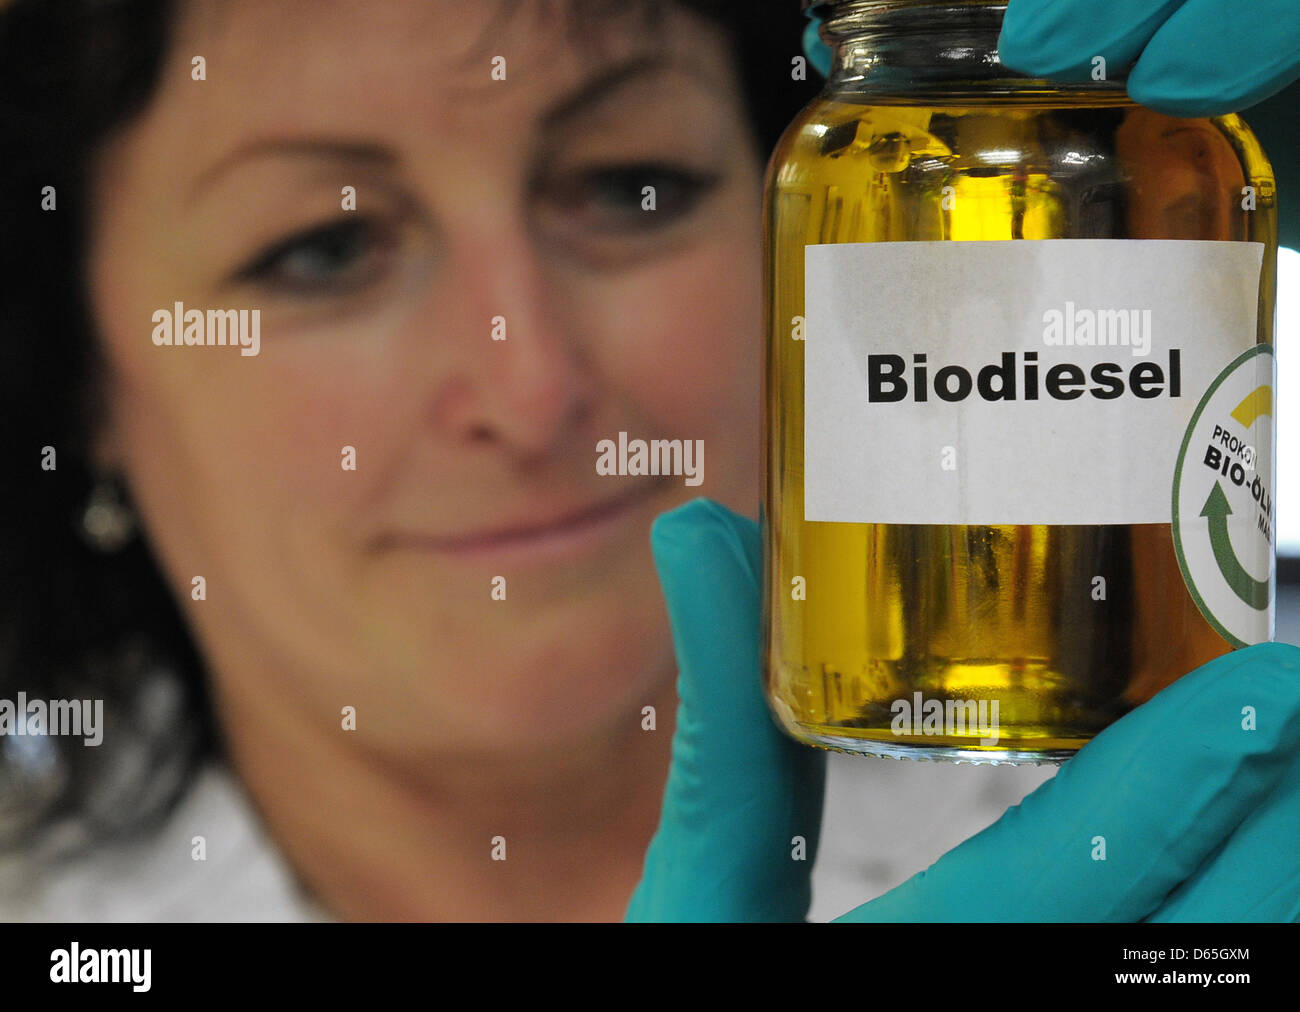 A laboratory worker examines a sample of biodiesel at the BIO-Oelwerk (Bio Oil Factory) in Magdeburg,Germany, - Stock Image